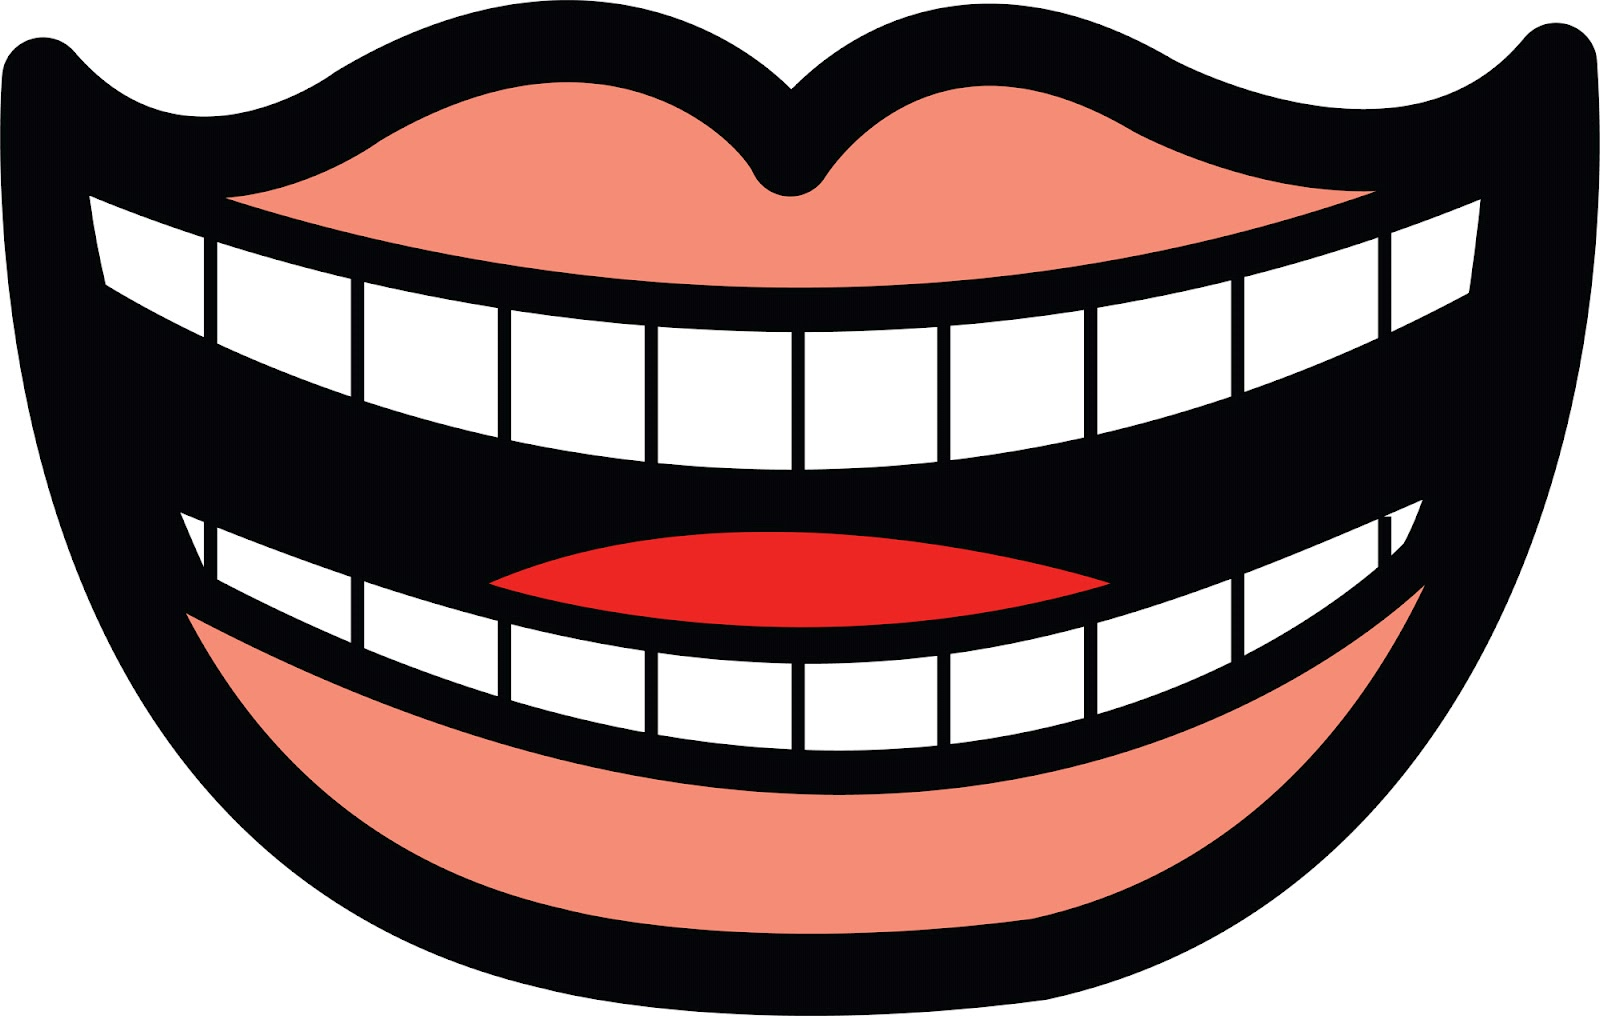 Animated talking mouth clipart image transparent library Talking Mouth Clipart | Free download best Talking Mouth Clipart on ... image transparent library